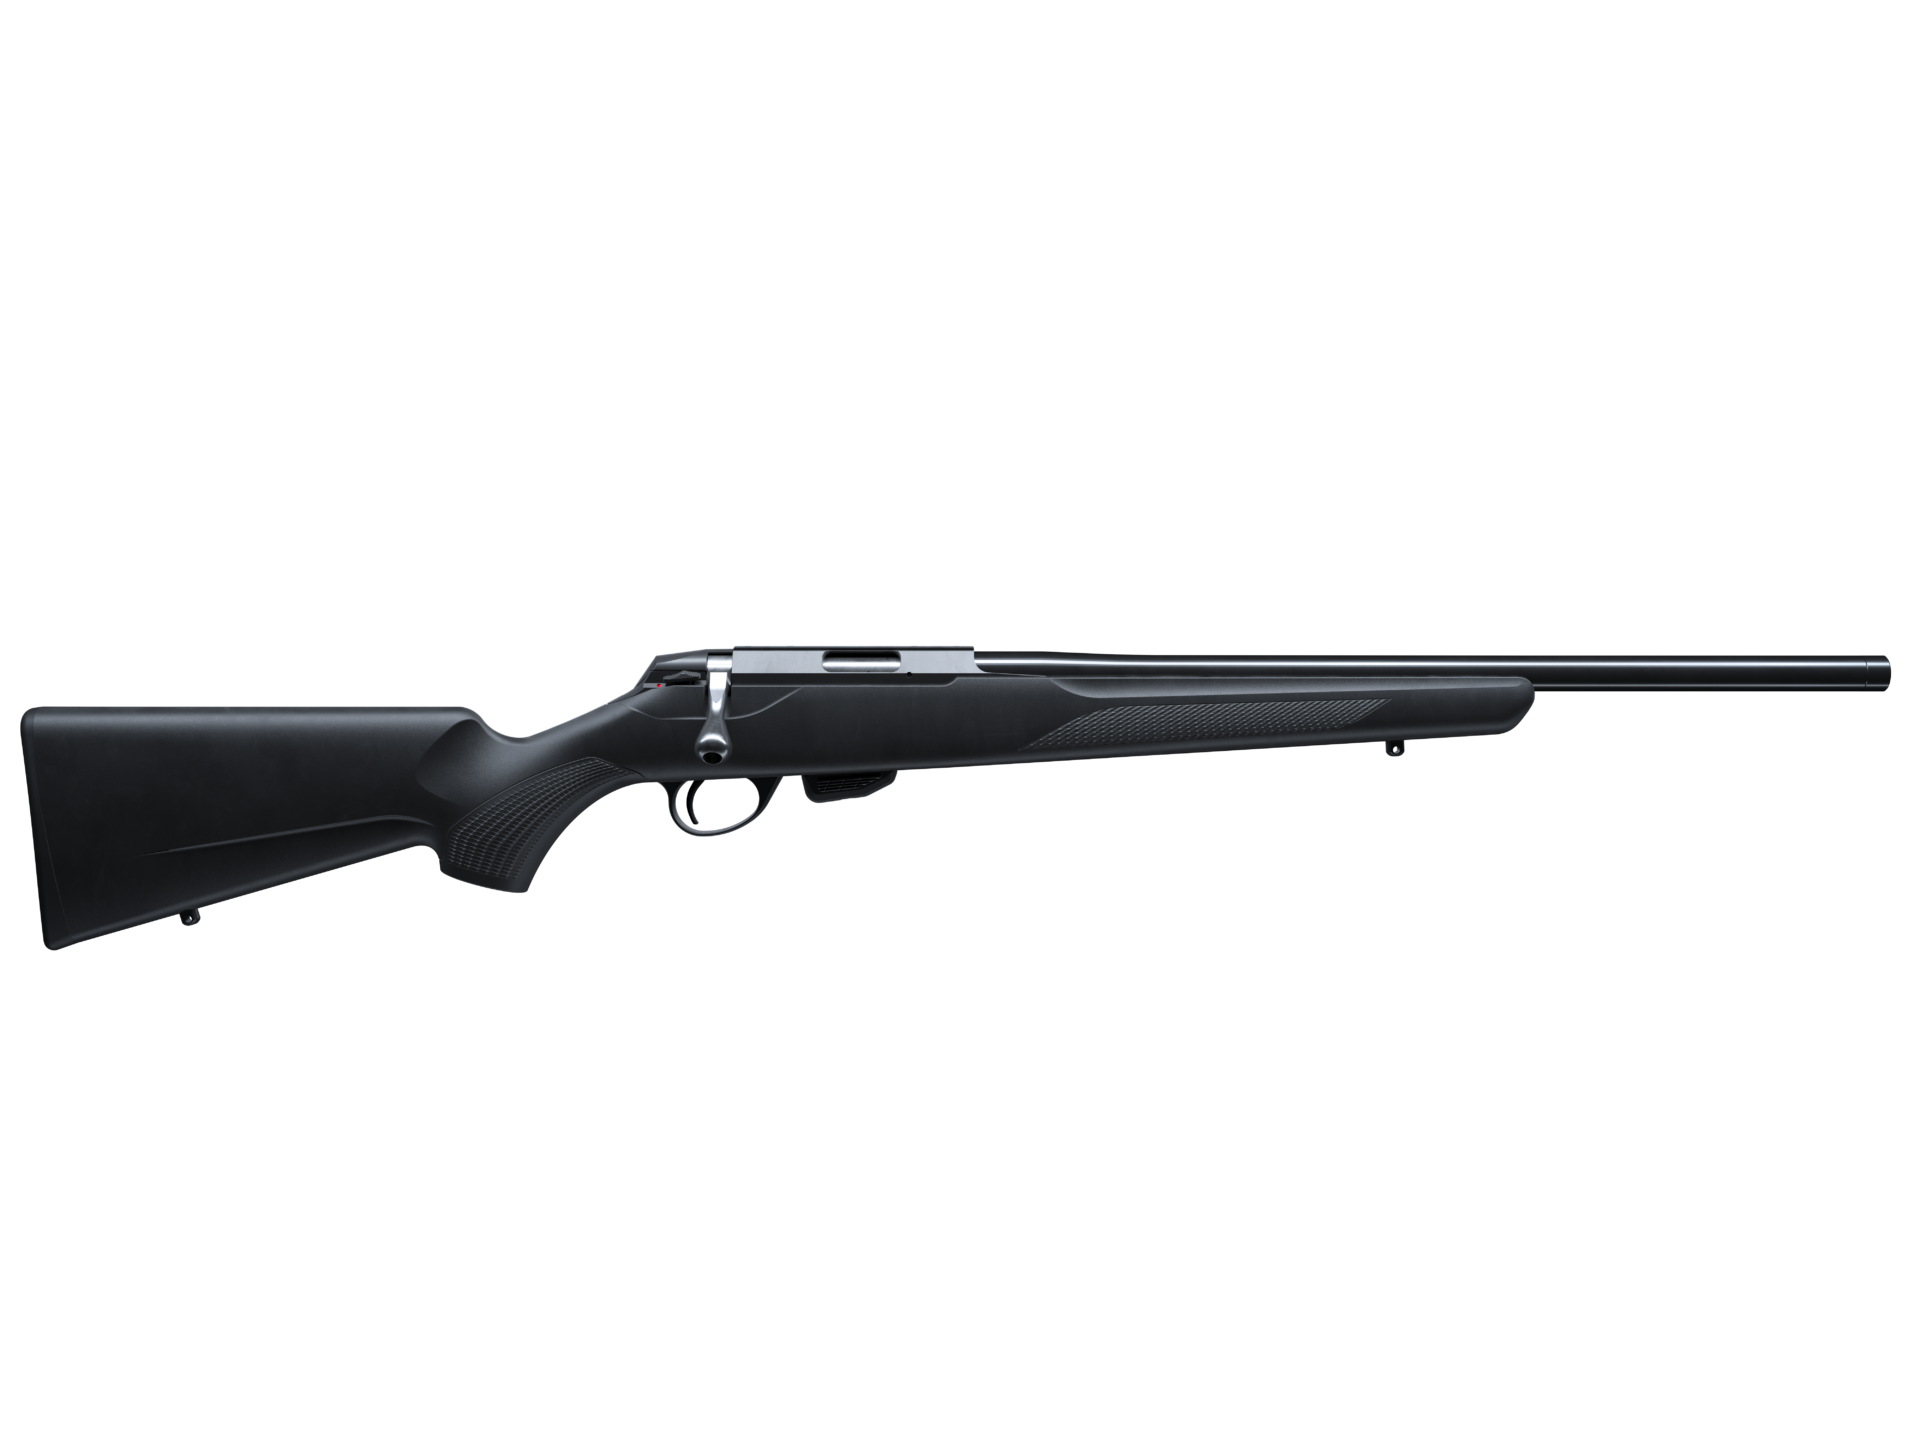 Tikka T1x MTR rifle.